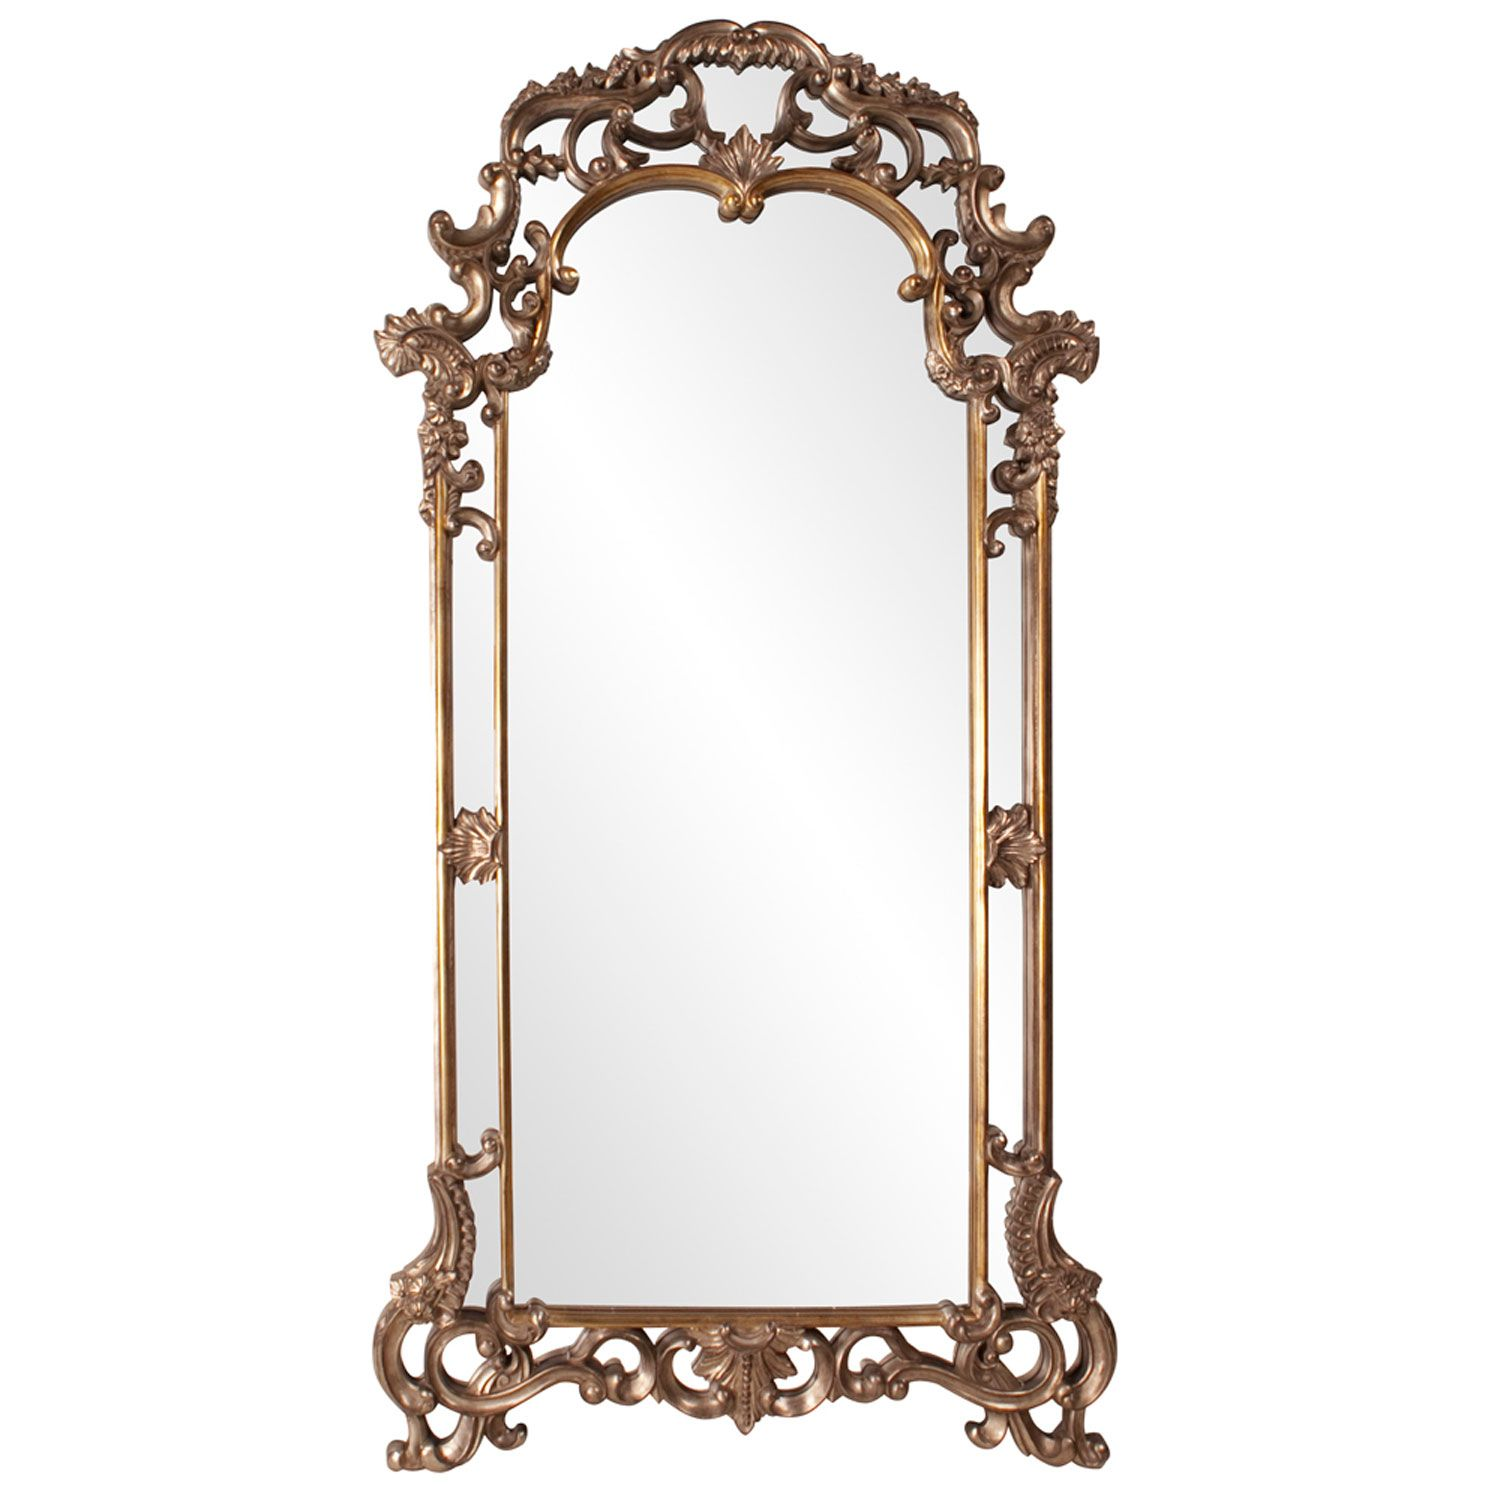 Howard Elliott Collection Imperial Mottled Bronze And Antique Silver Rectangle Mirror 92024 Bellacor In 2021 Rectangle Mirror Ornate Mirror Mirror [ 1500 x 1500 Pixel ]